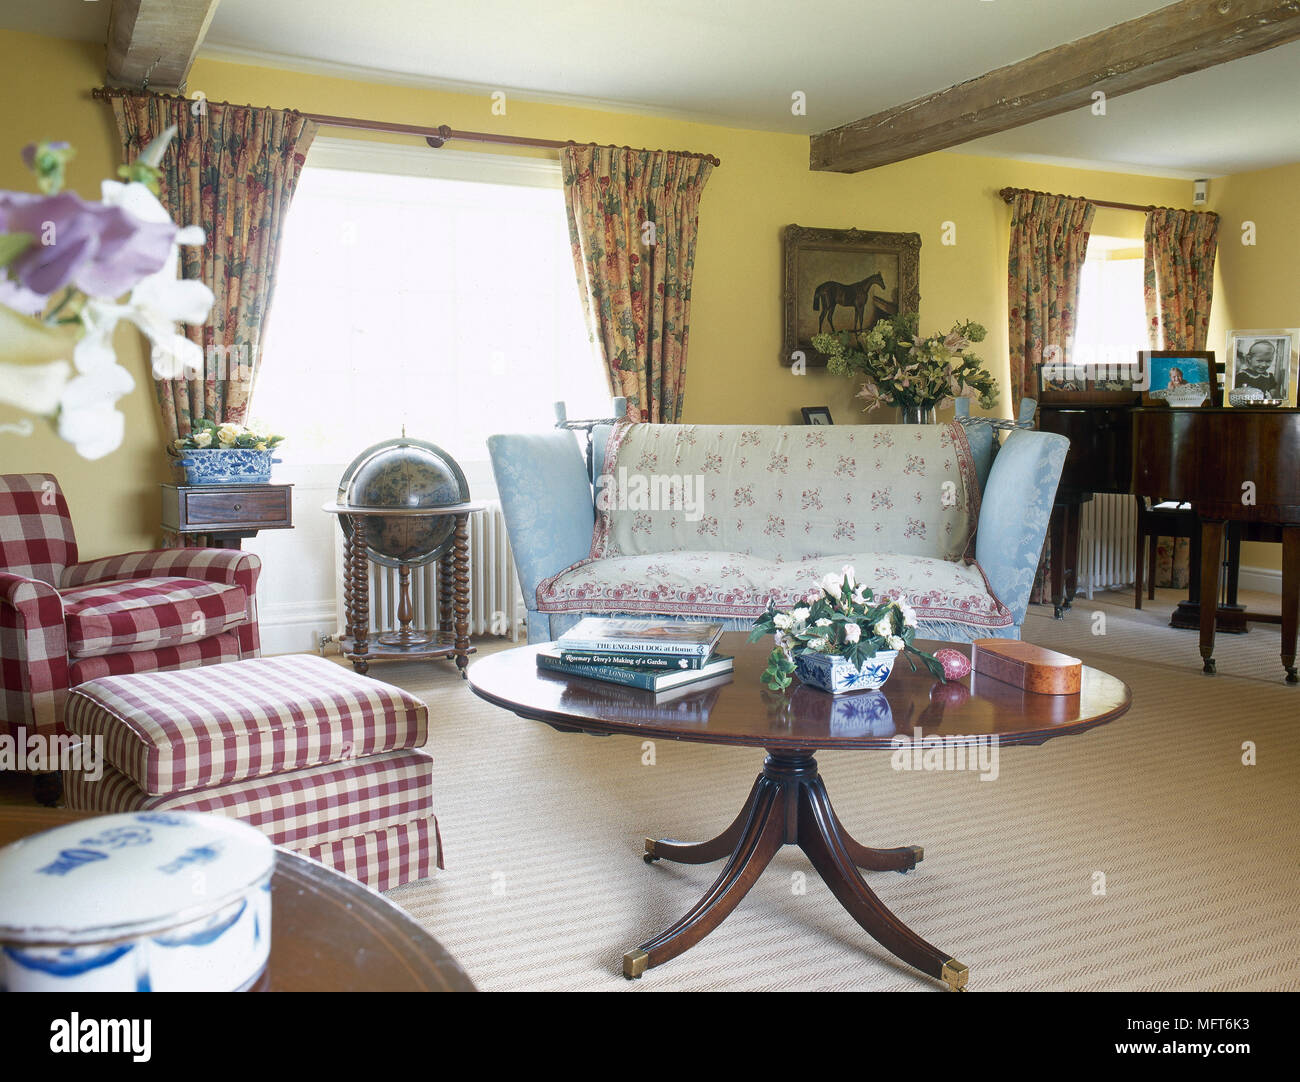 Country Cottage Sitting Room With A Beamed Ceiling, Floral Curtains,  Pedestal Coffee Table, And An Upholstered Sofa And Chair.